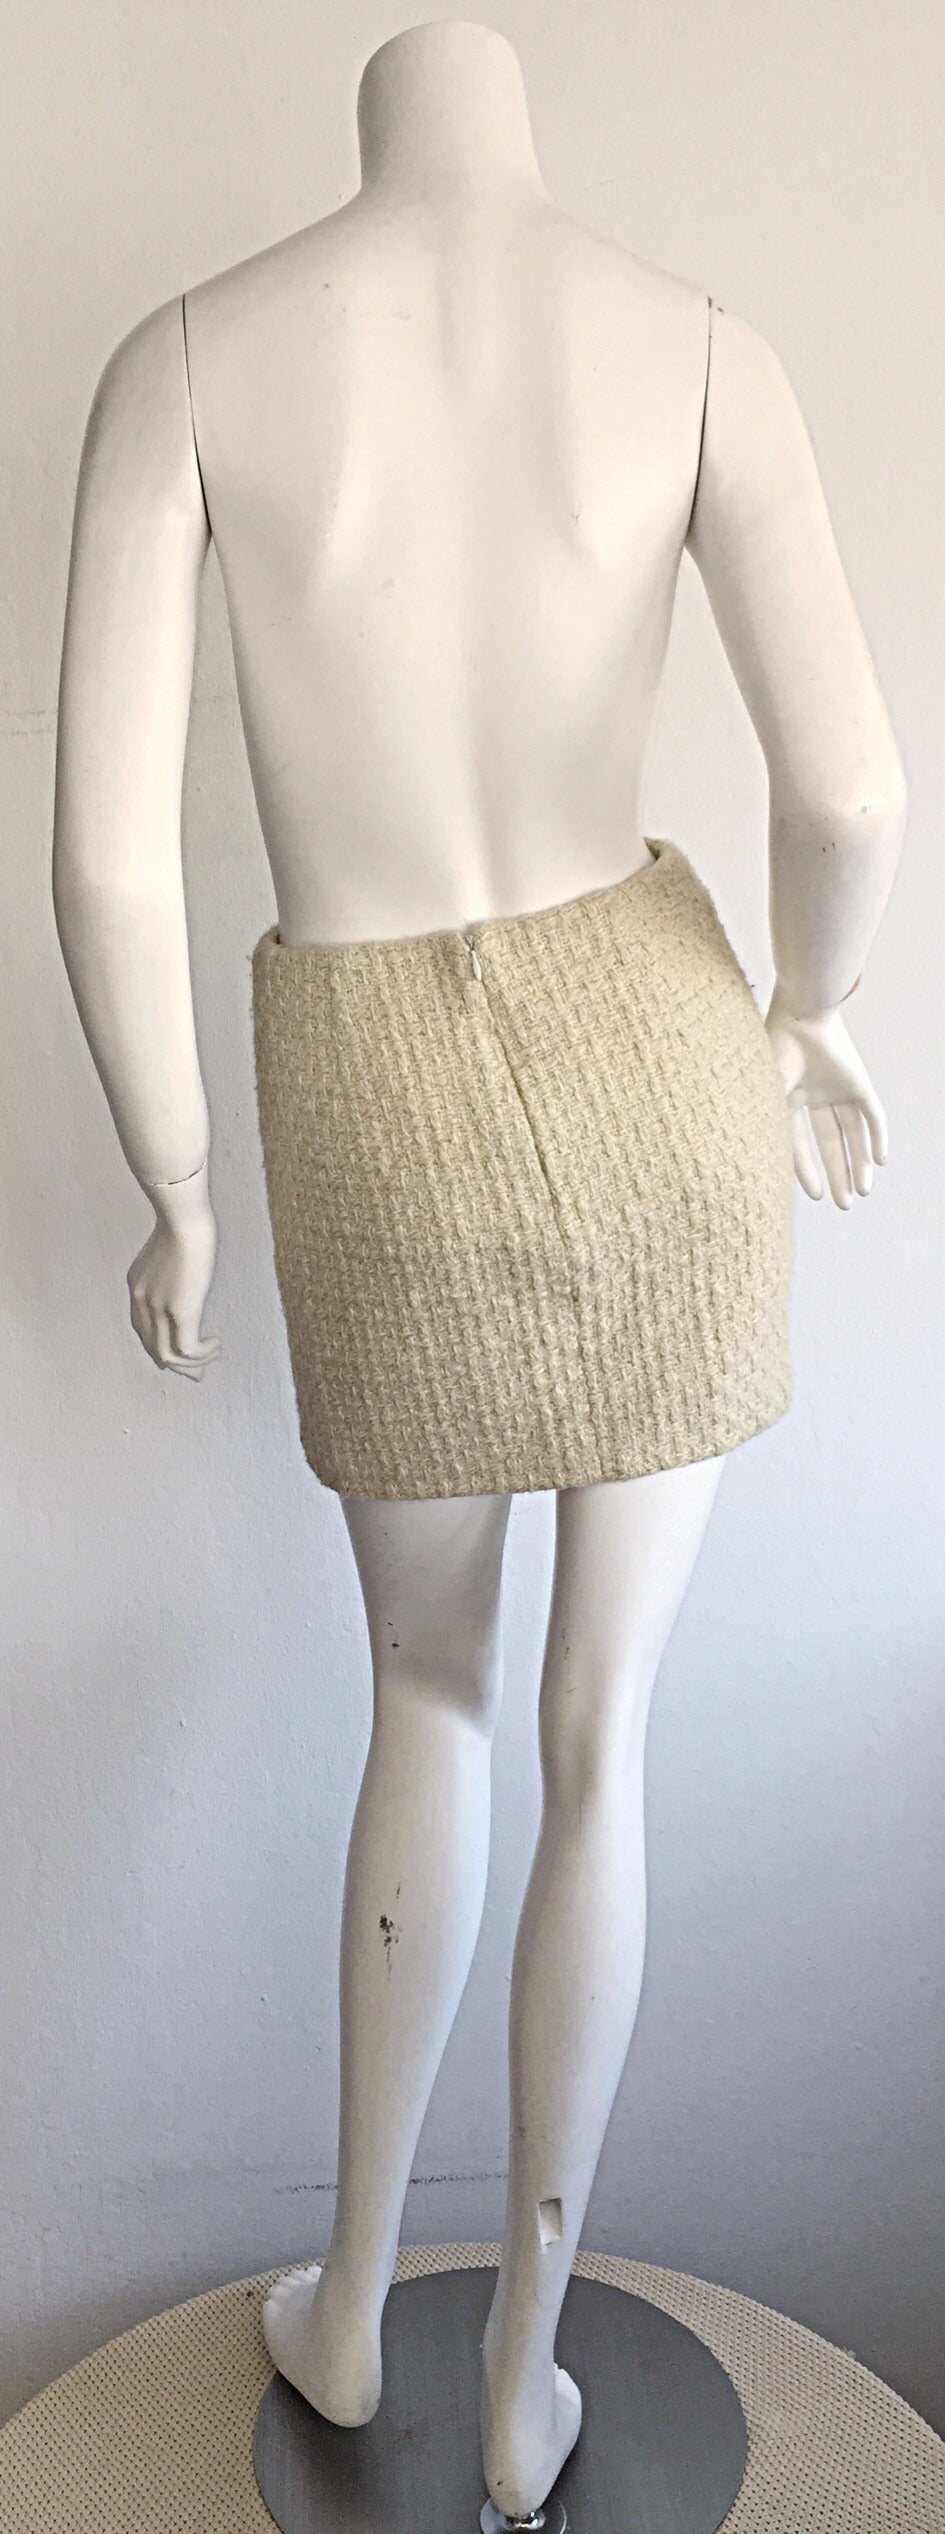 Sexy 1990s Vintage Gianni Versace Couture Ivory Off - White Cashmere Mini Skirt For Sale 1